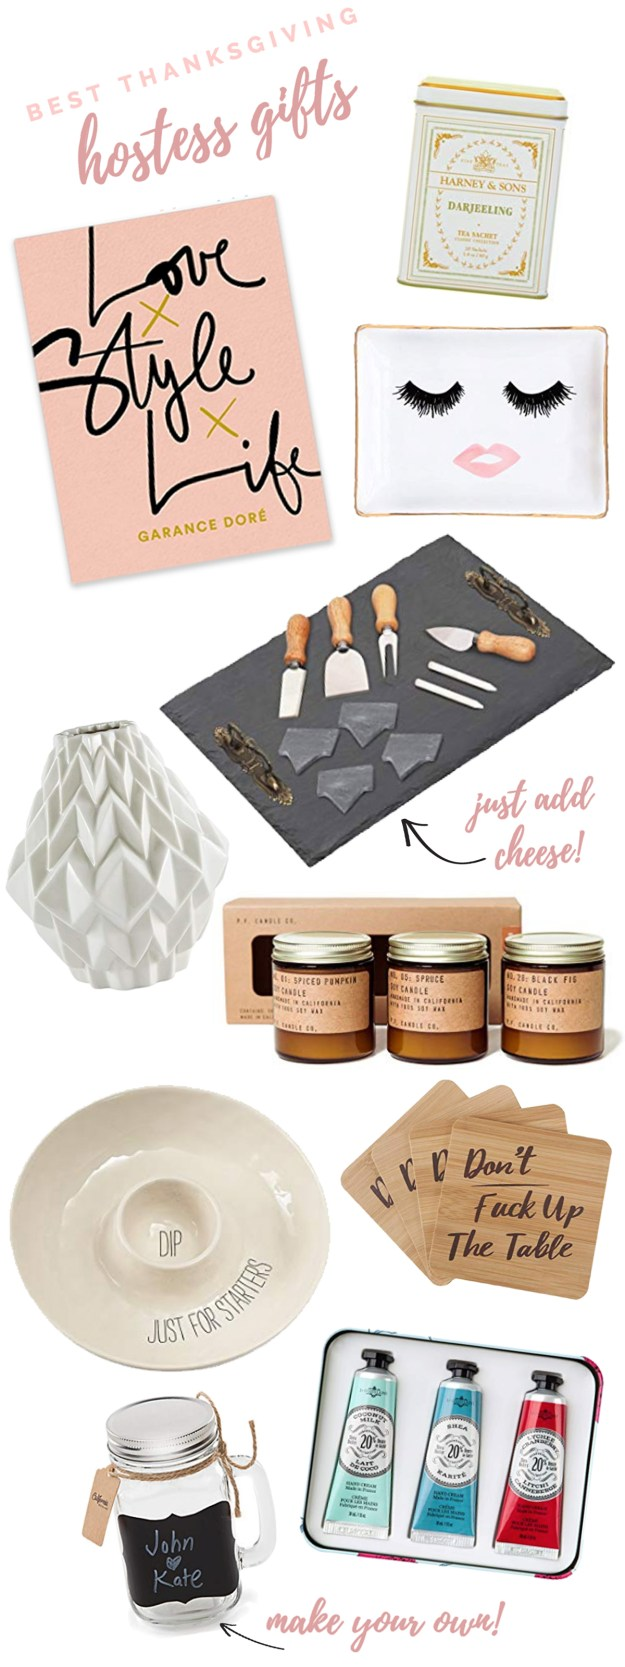 Best Thanksgiving Hostess Gifts from Amazon | A Good Hue